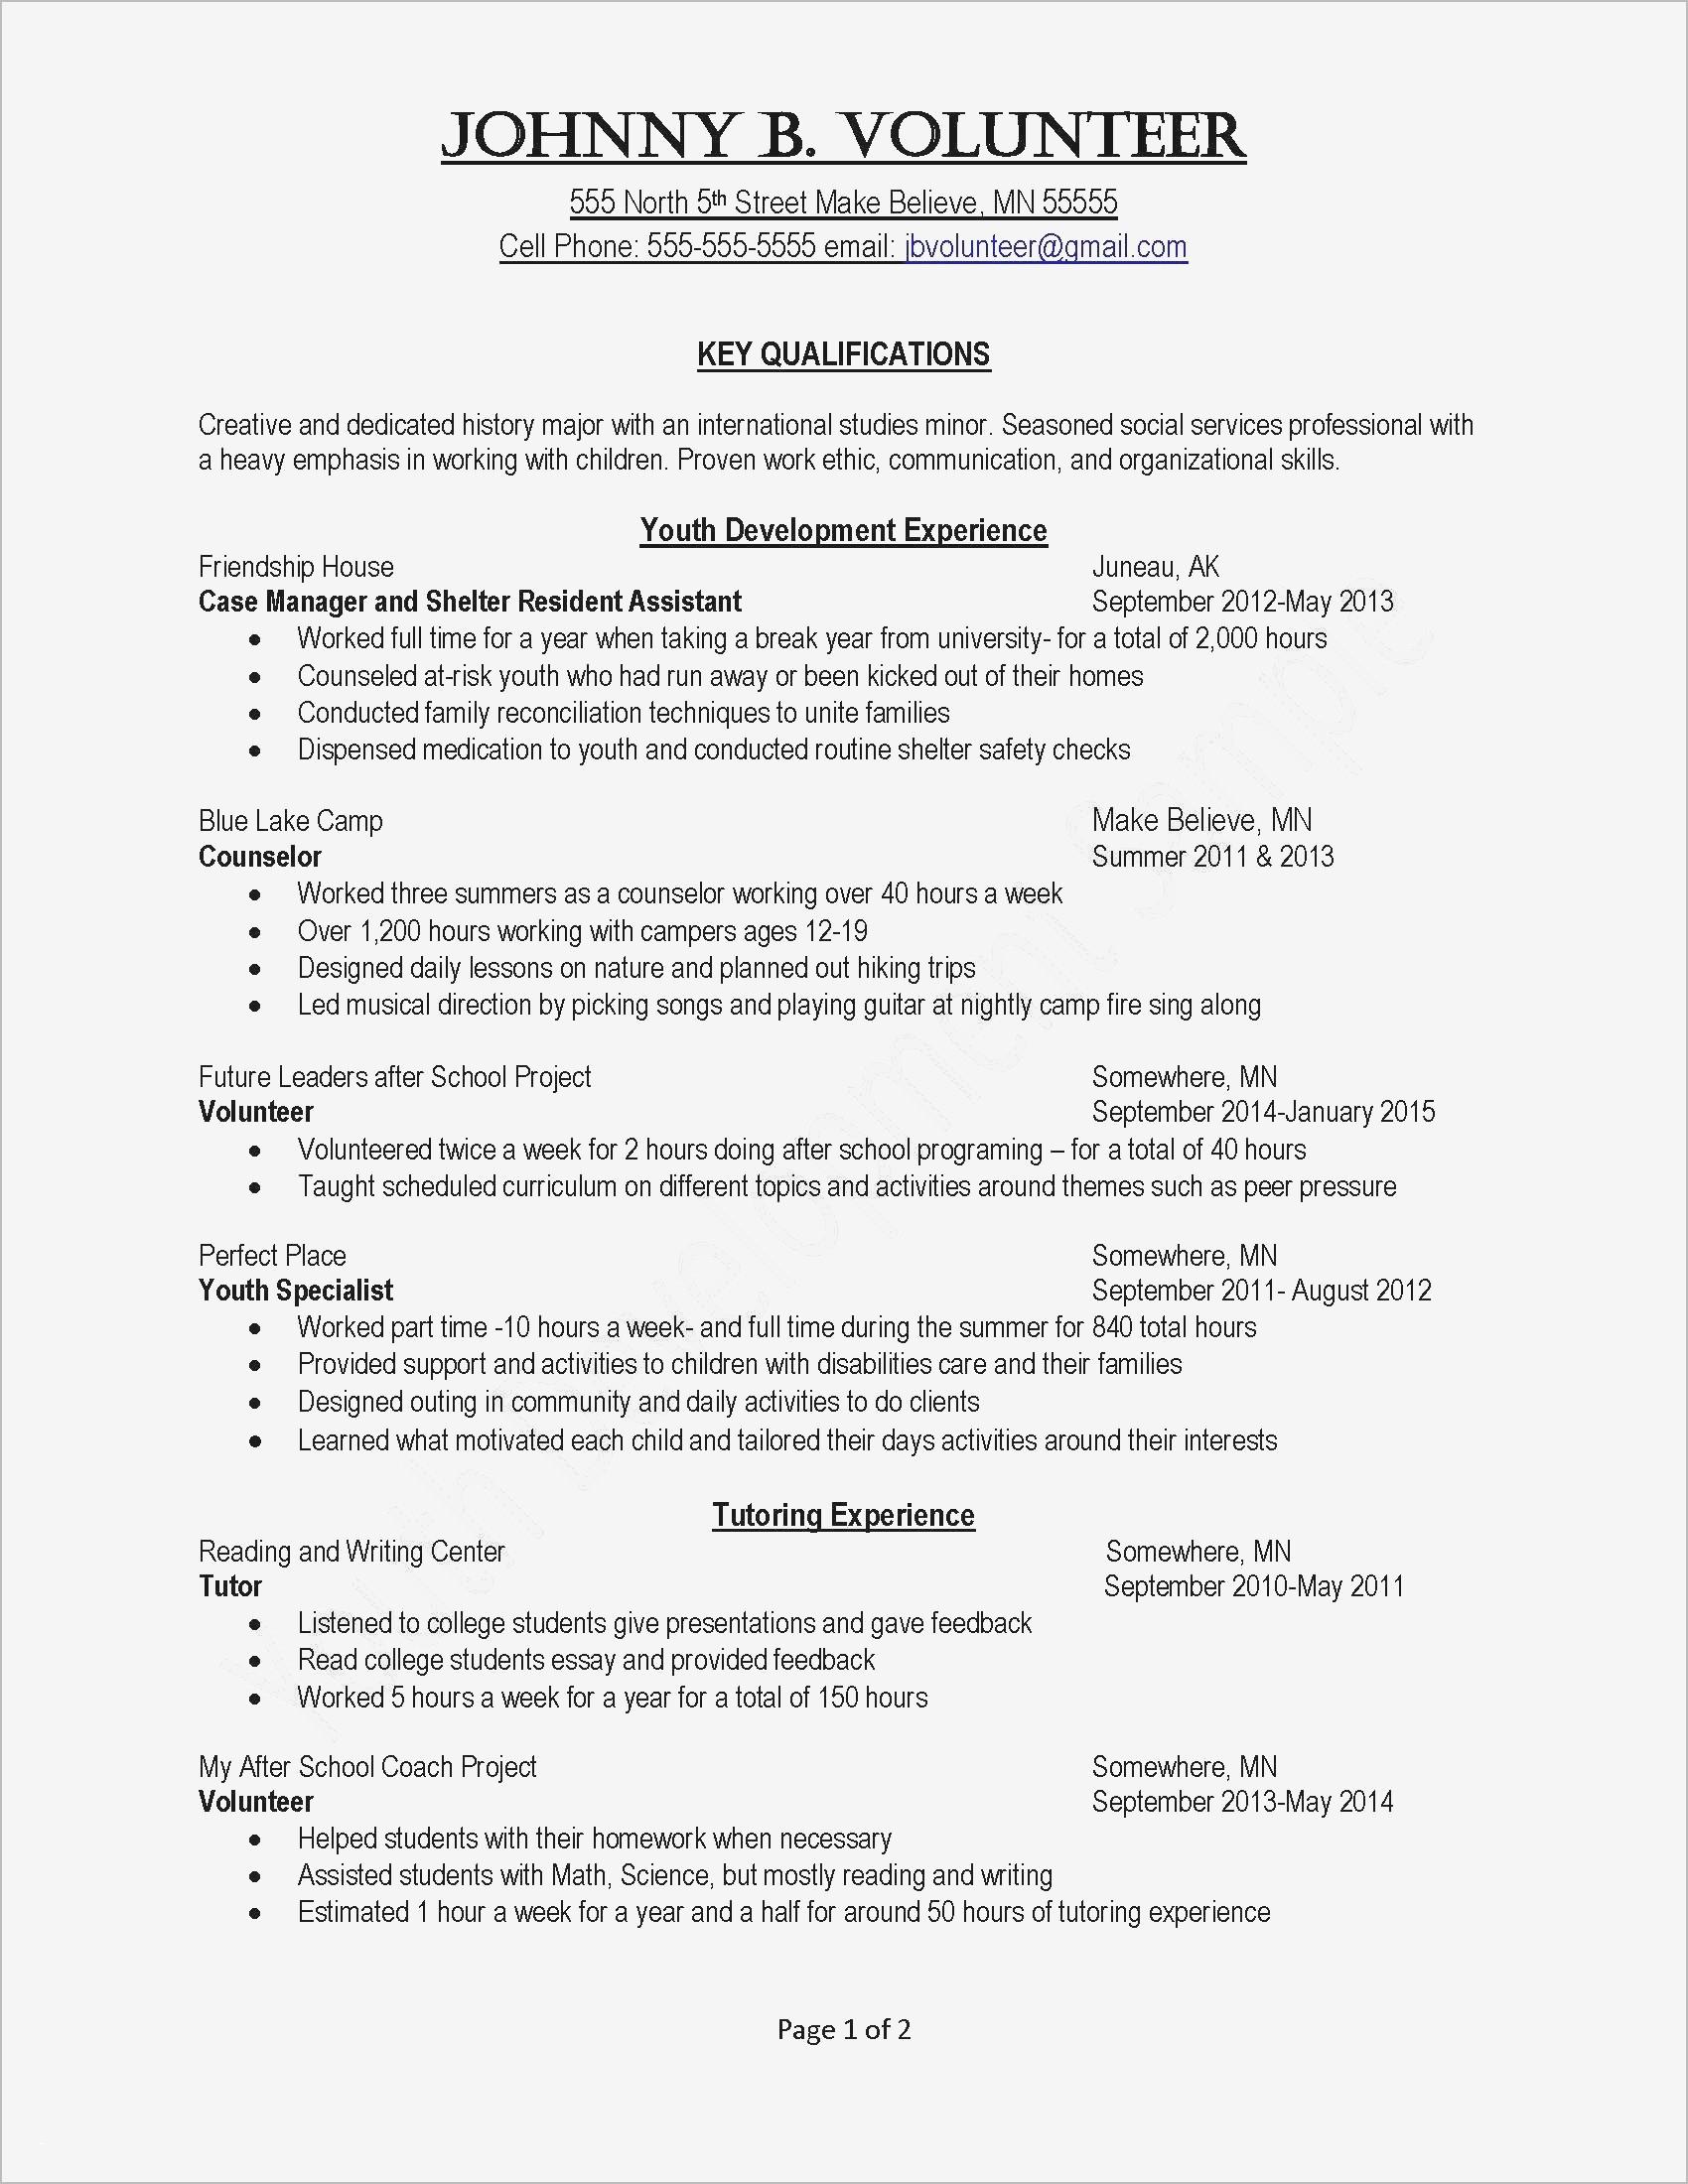 Volunteer Hours Confirmation Letter Template - Quote for Volunteering Lovely Grapher Resume Sample Beautiful Resume